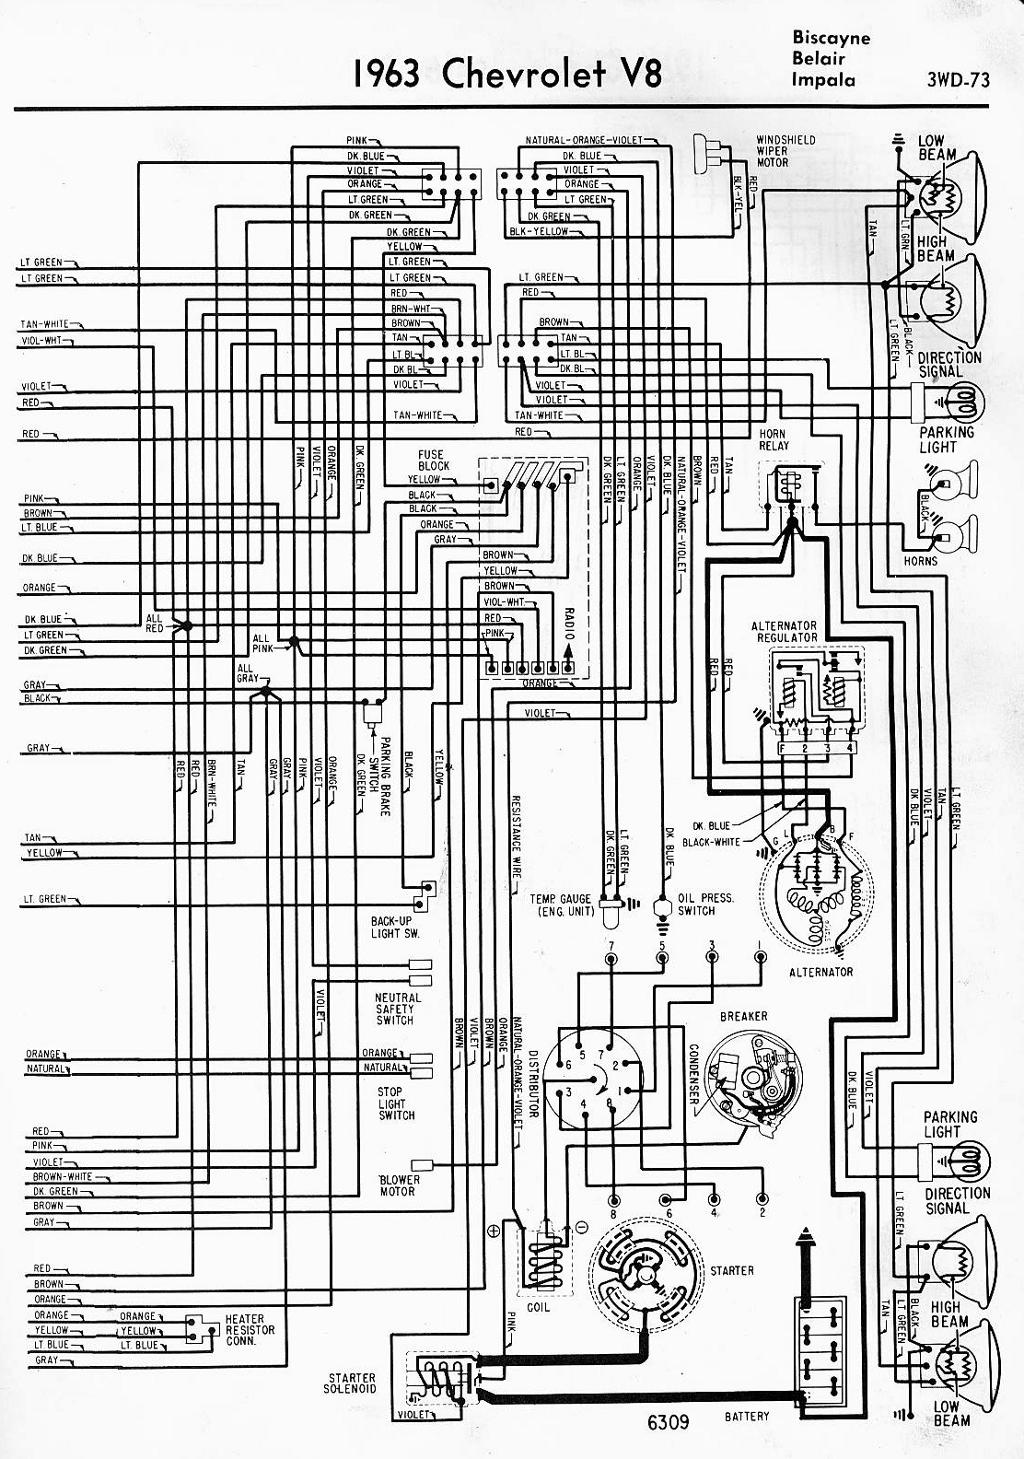 [FPWZ_2684]  73 Impala Wiring Diagram - Data Wiring Diagrams | Custom 73 Impala Wiring Harness |  | dvisitearte.it